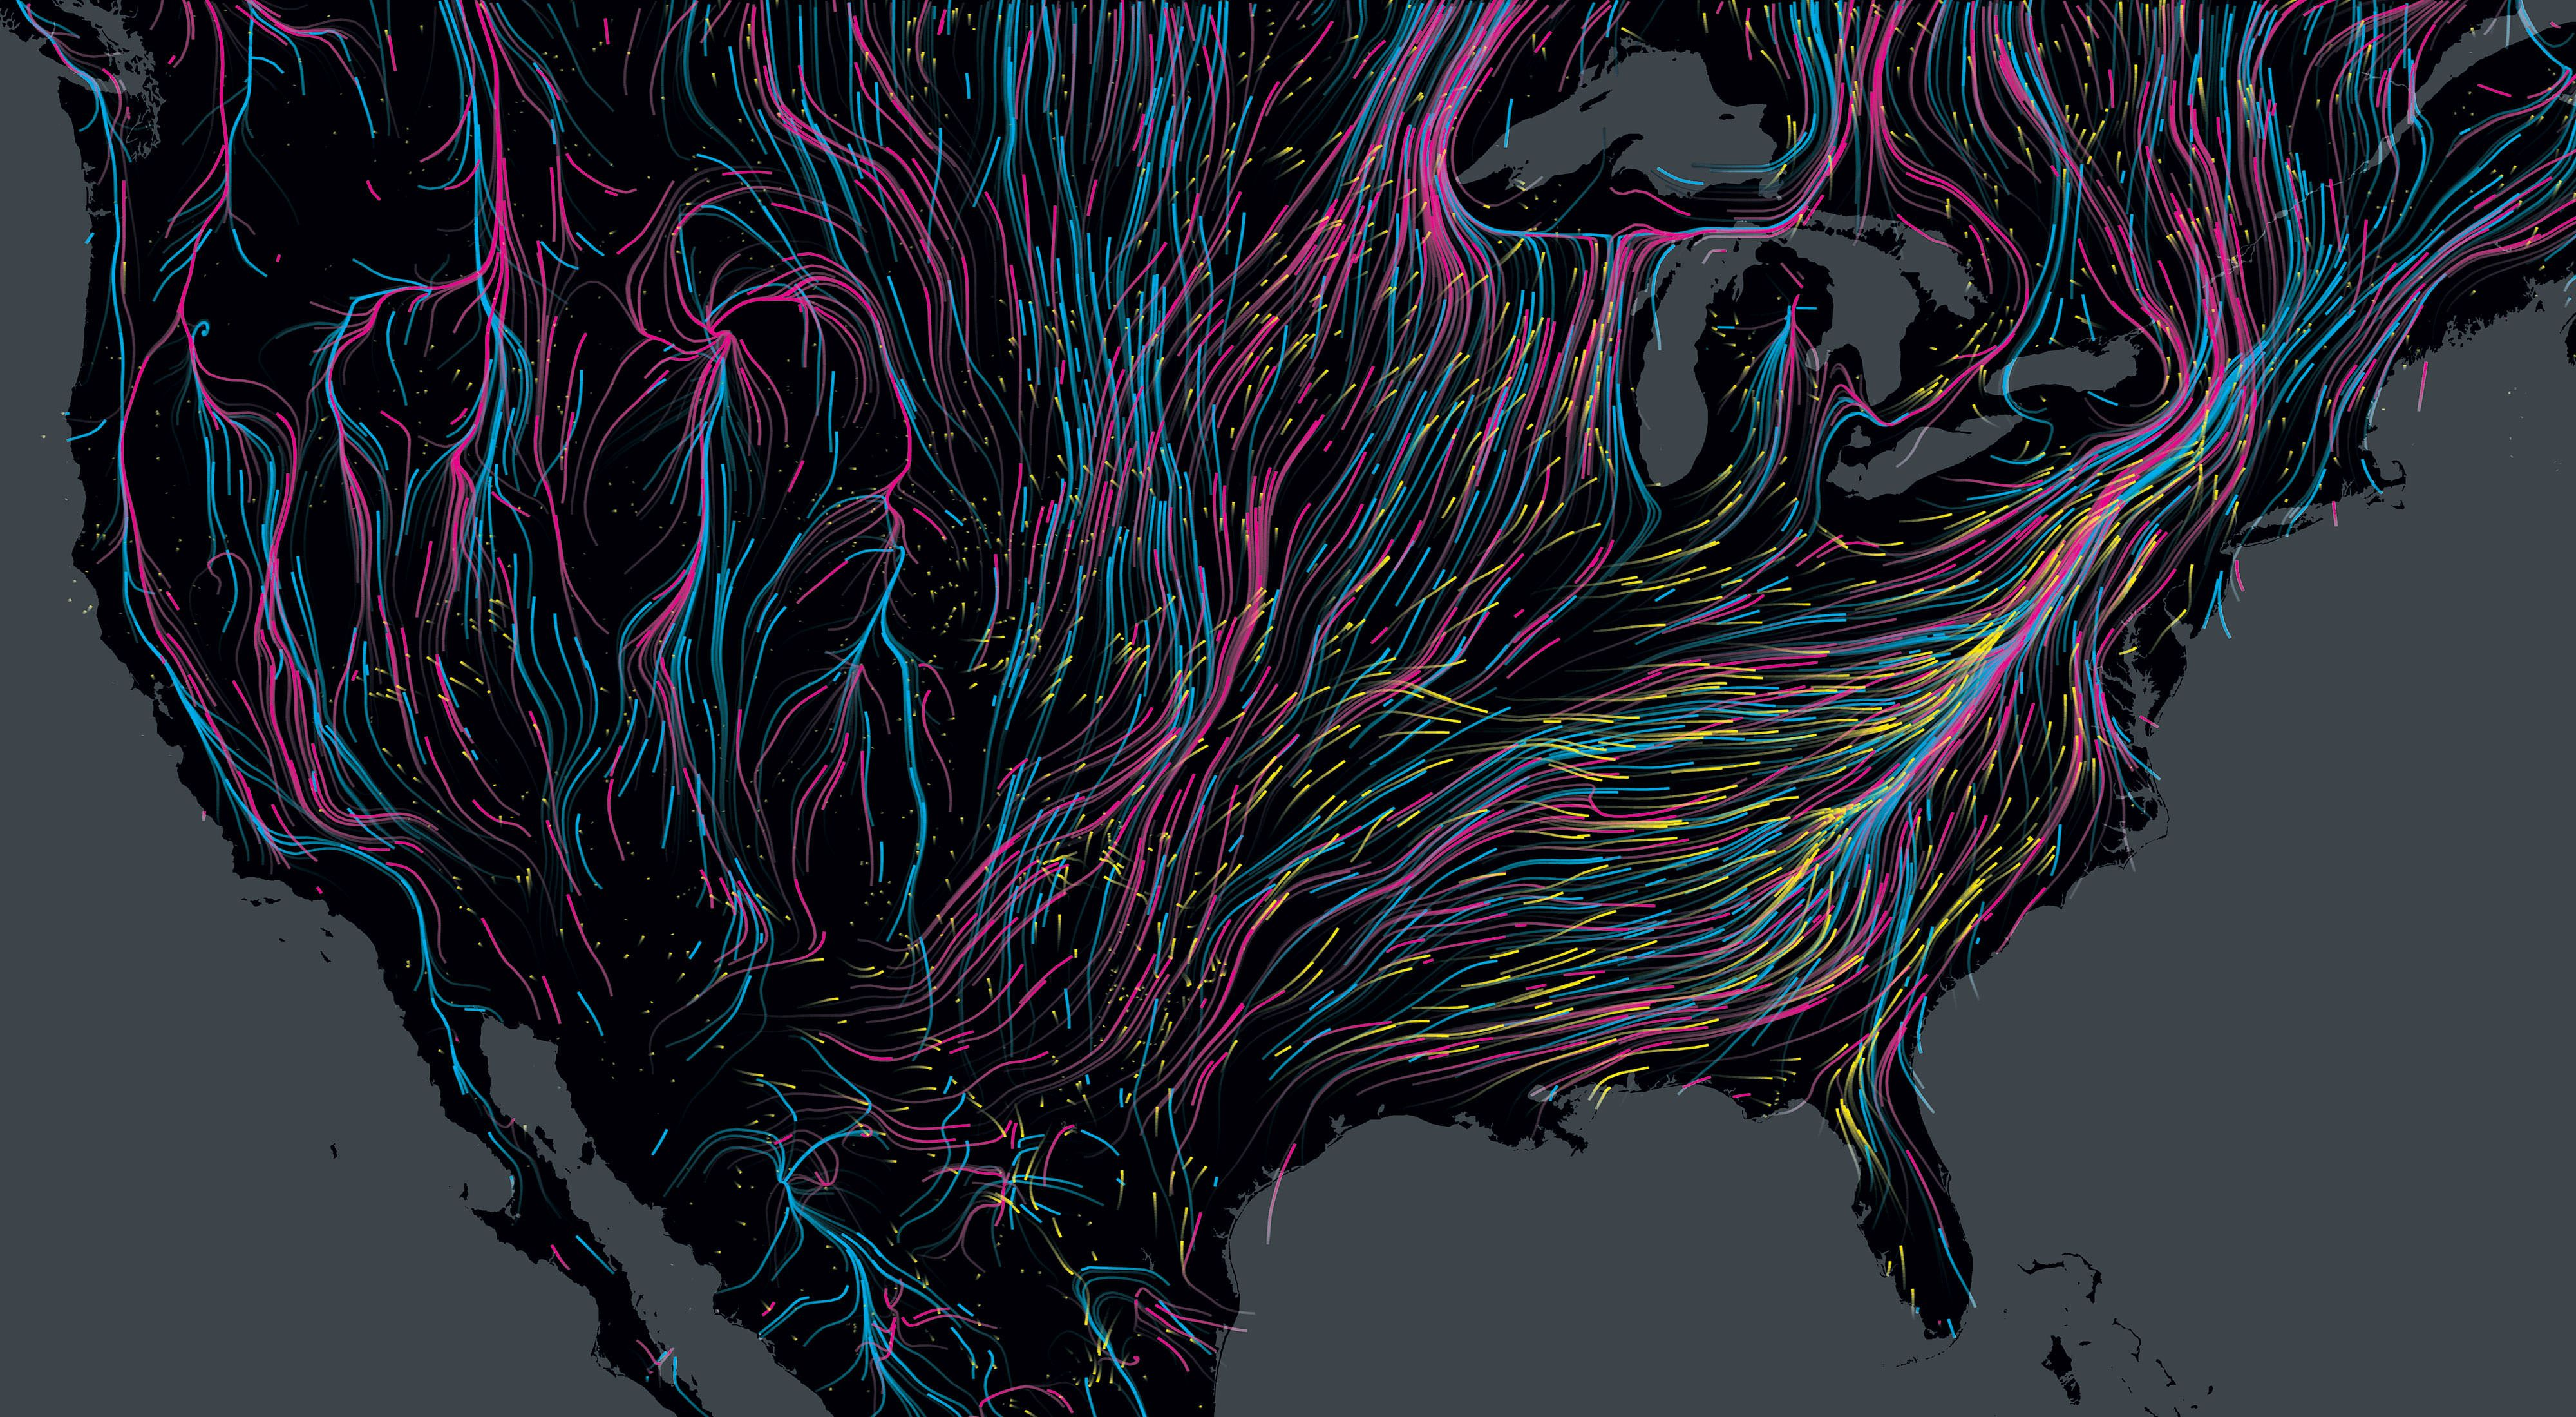 A map of the US is crisscrossed with the colorful paths different animals take as they migrate